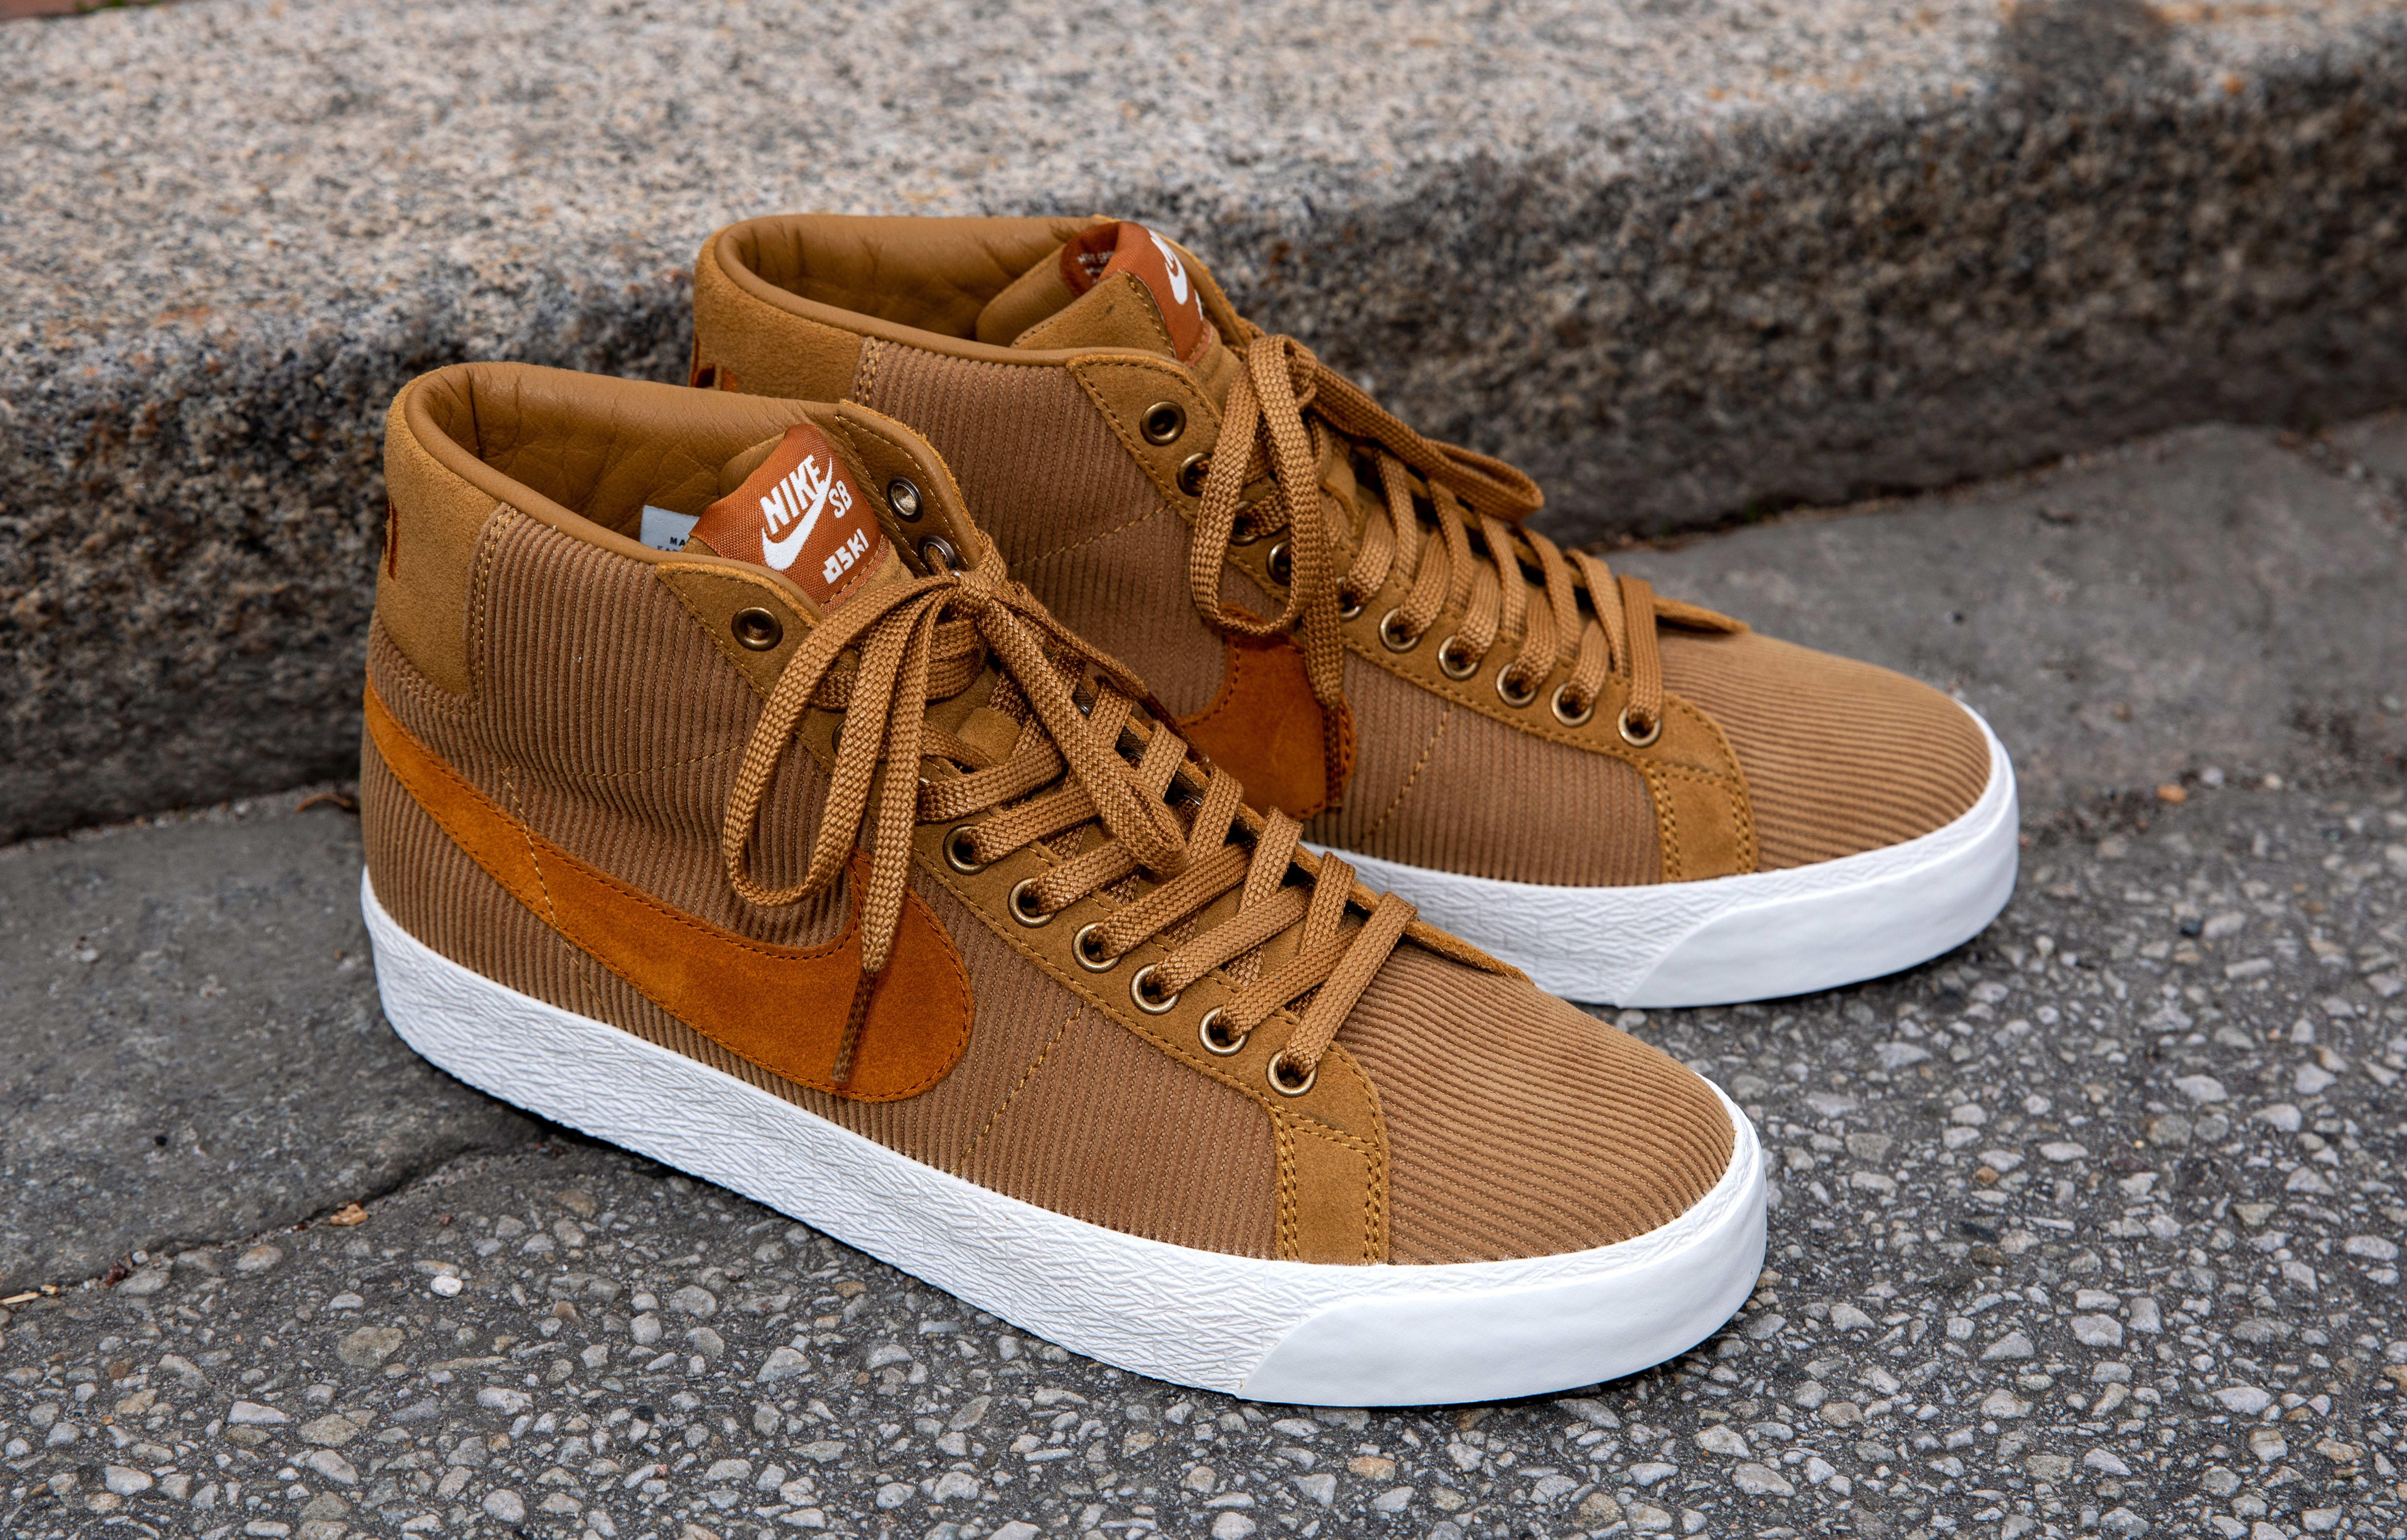 Oski's 'Orange Label' Nike SB Pack Releases This Month